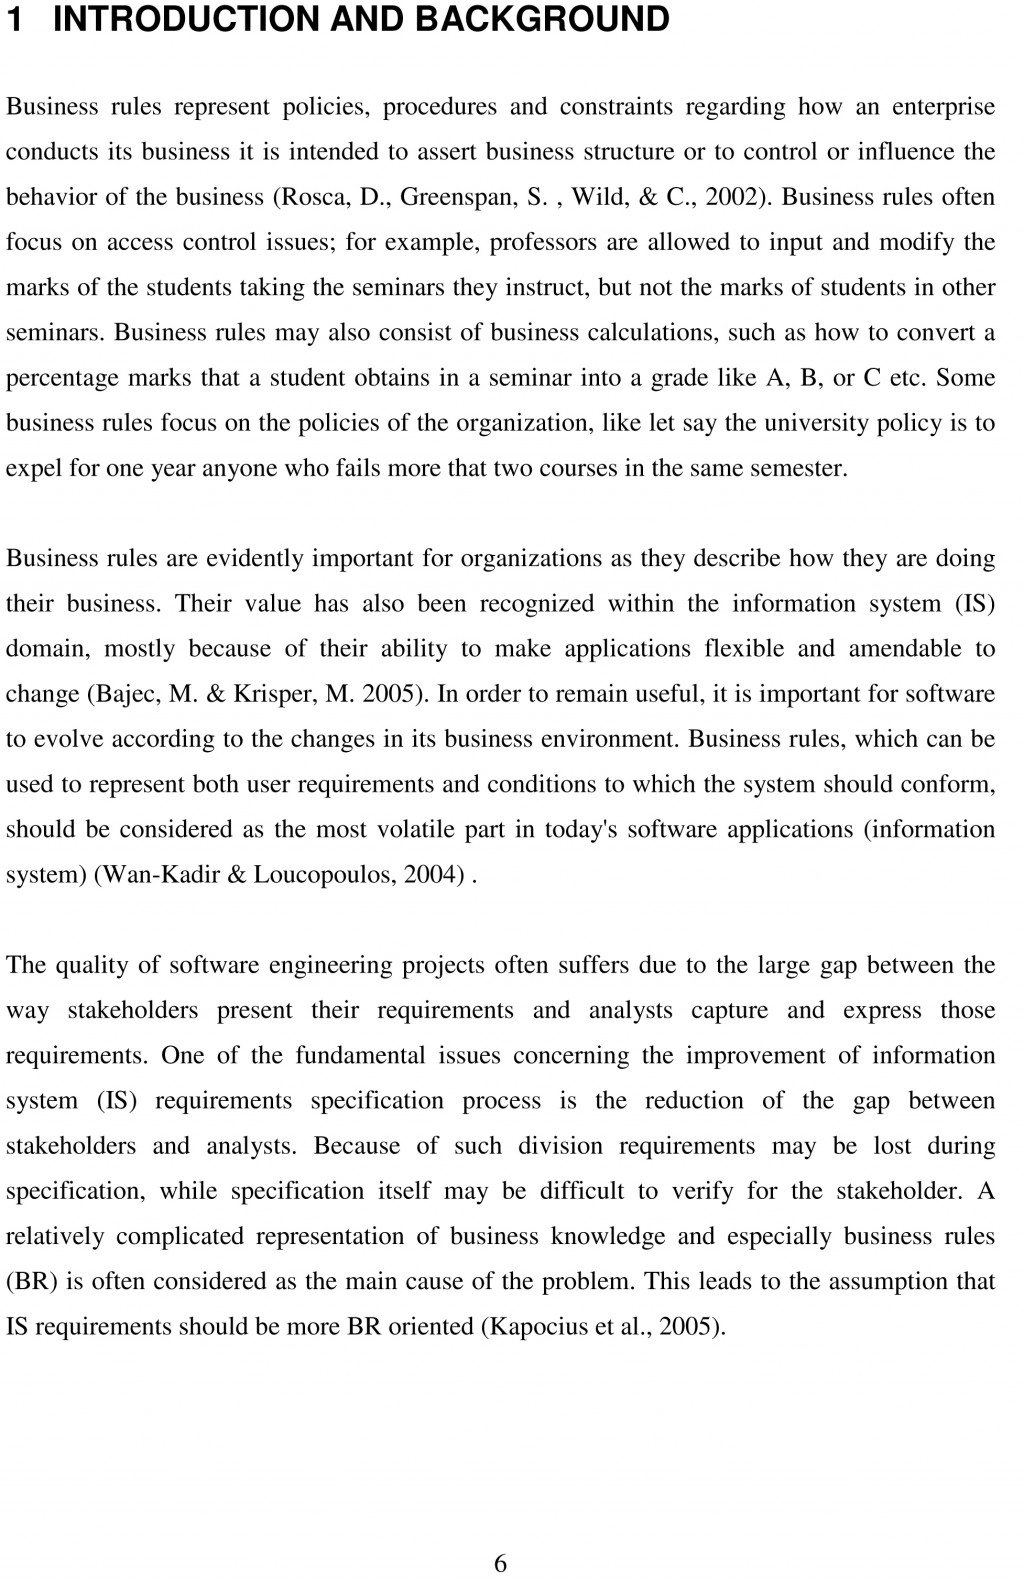 012 Opening Sentences For Essays Thesis Free Sample1 Essay Unique Examples Of Good College Paragraphs Starting Large